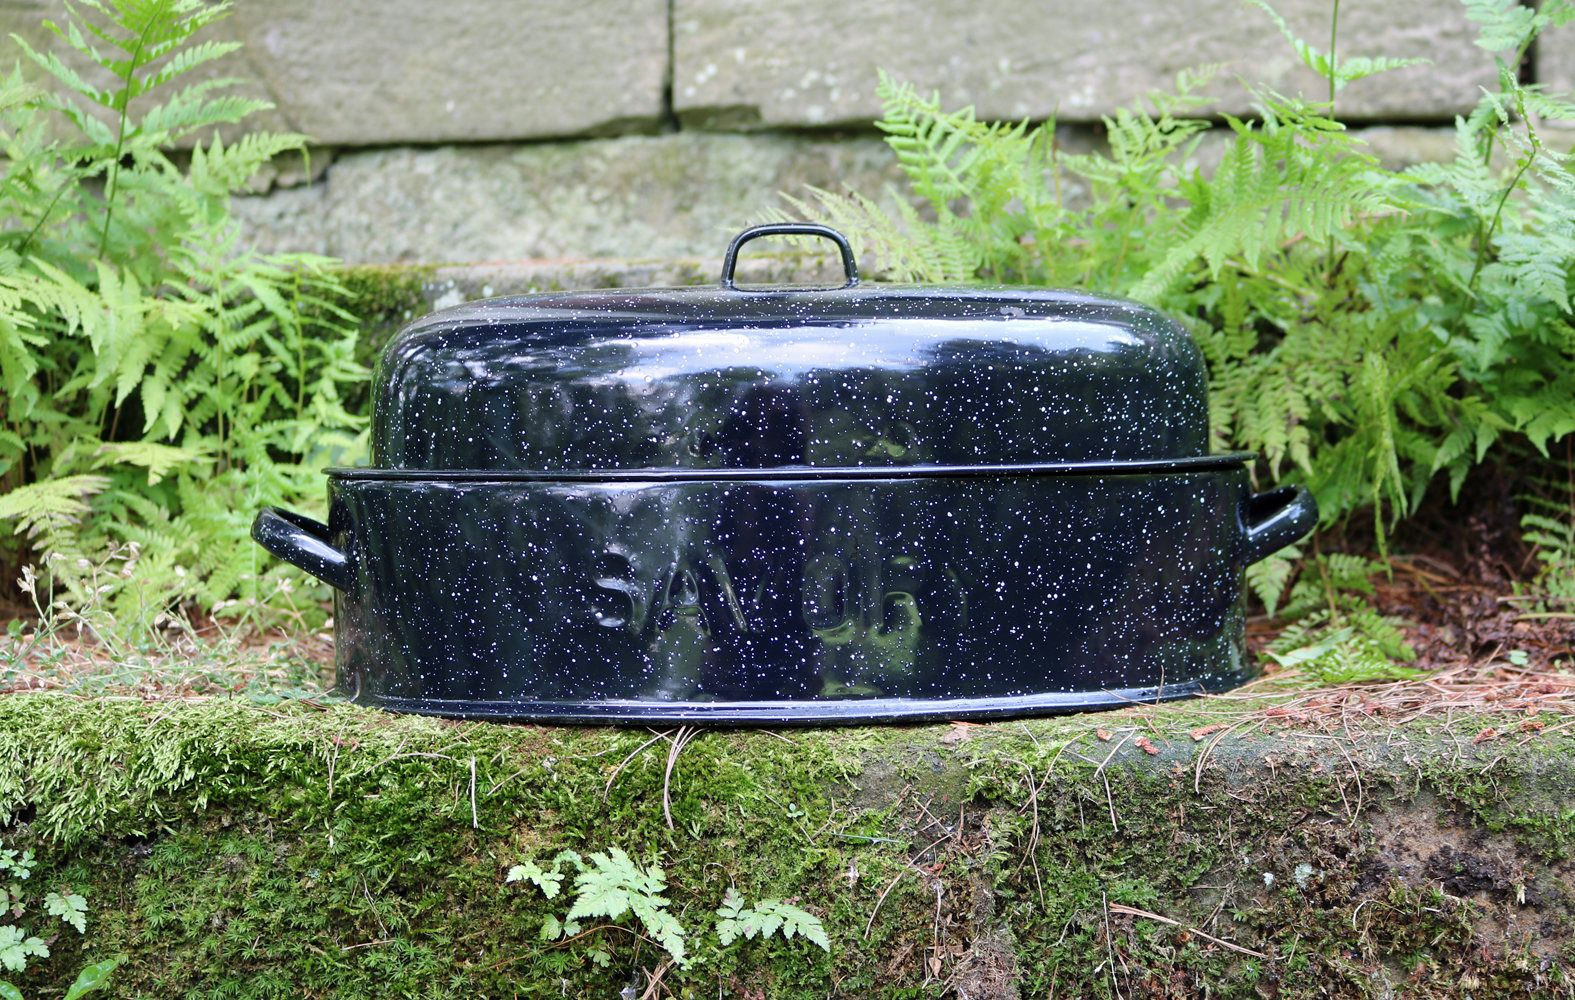 Savory Medium 15 X 10 Oval Double Walled Graniteware Enamelware Roaster Baking Pan Lid 1930s Dutch Oven Turkey Enamelware Vintage Cookware Vintage